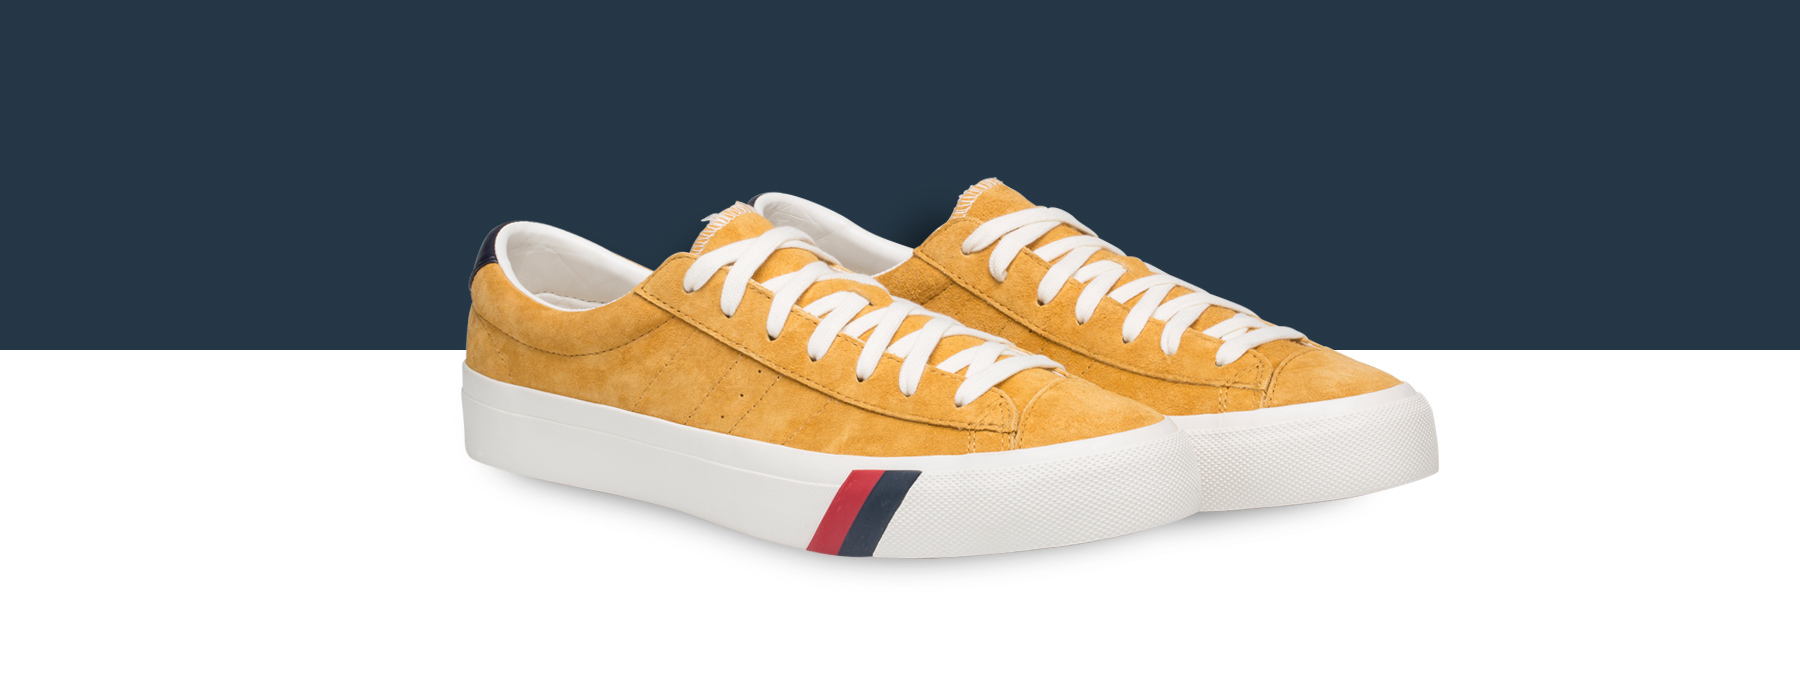 Pair of Pro-Keds Royal Lo's in a fall inspired color.